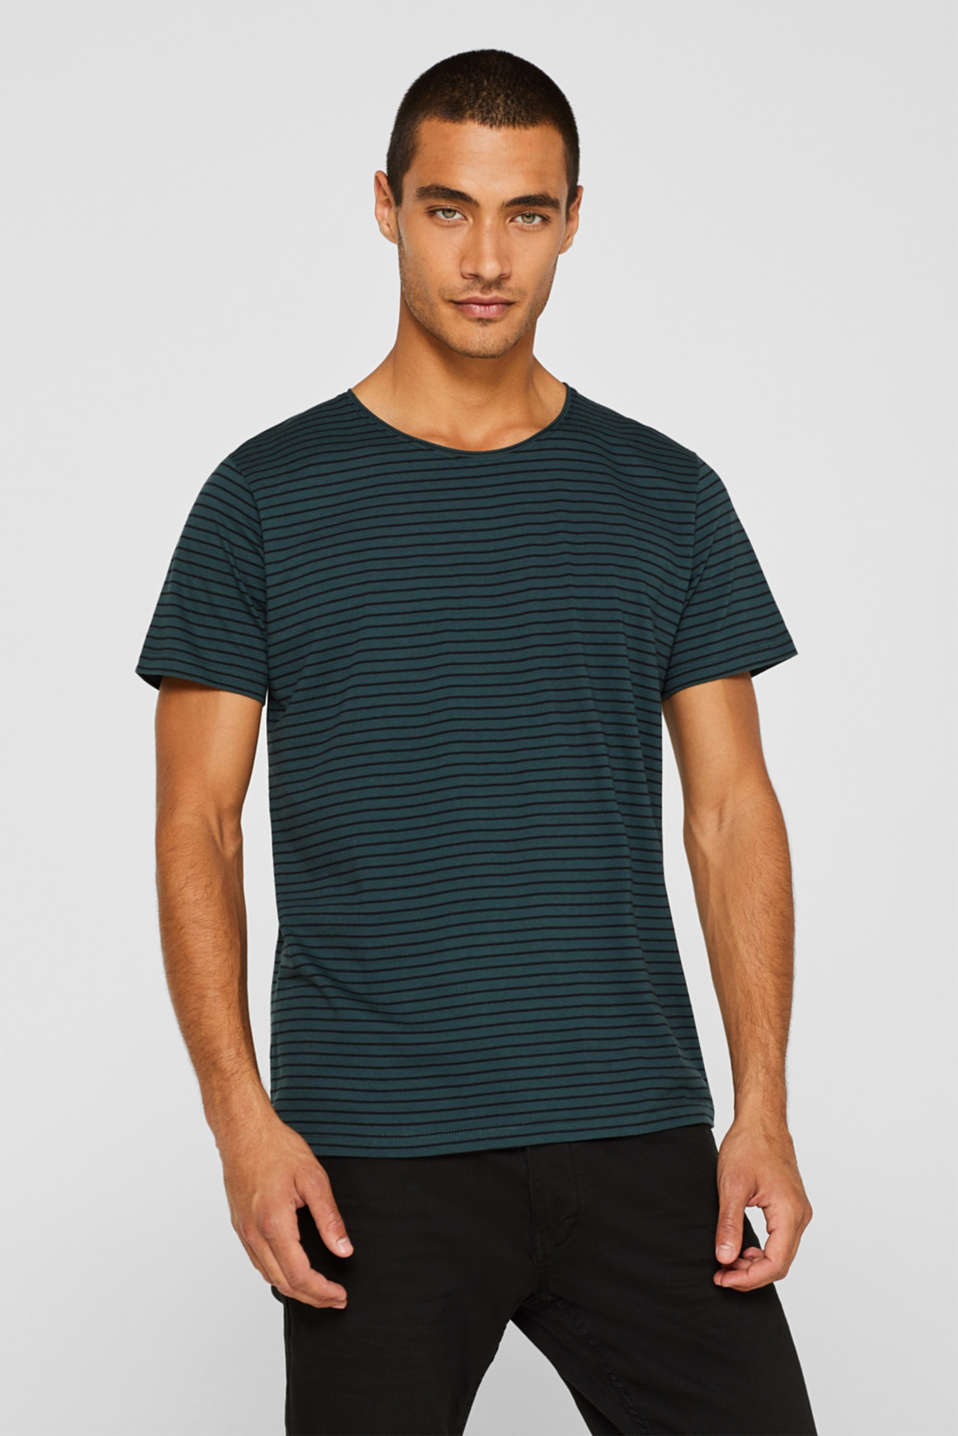 Jersey T-shirt with stripes, 100% cotton, TEAL BLUE, detail image number 0